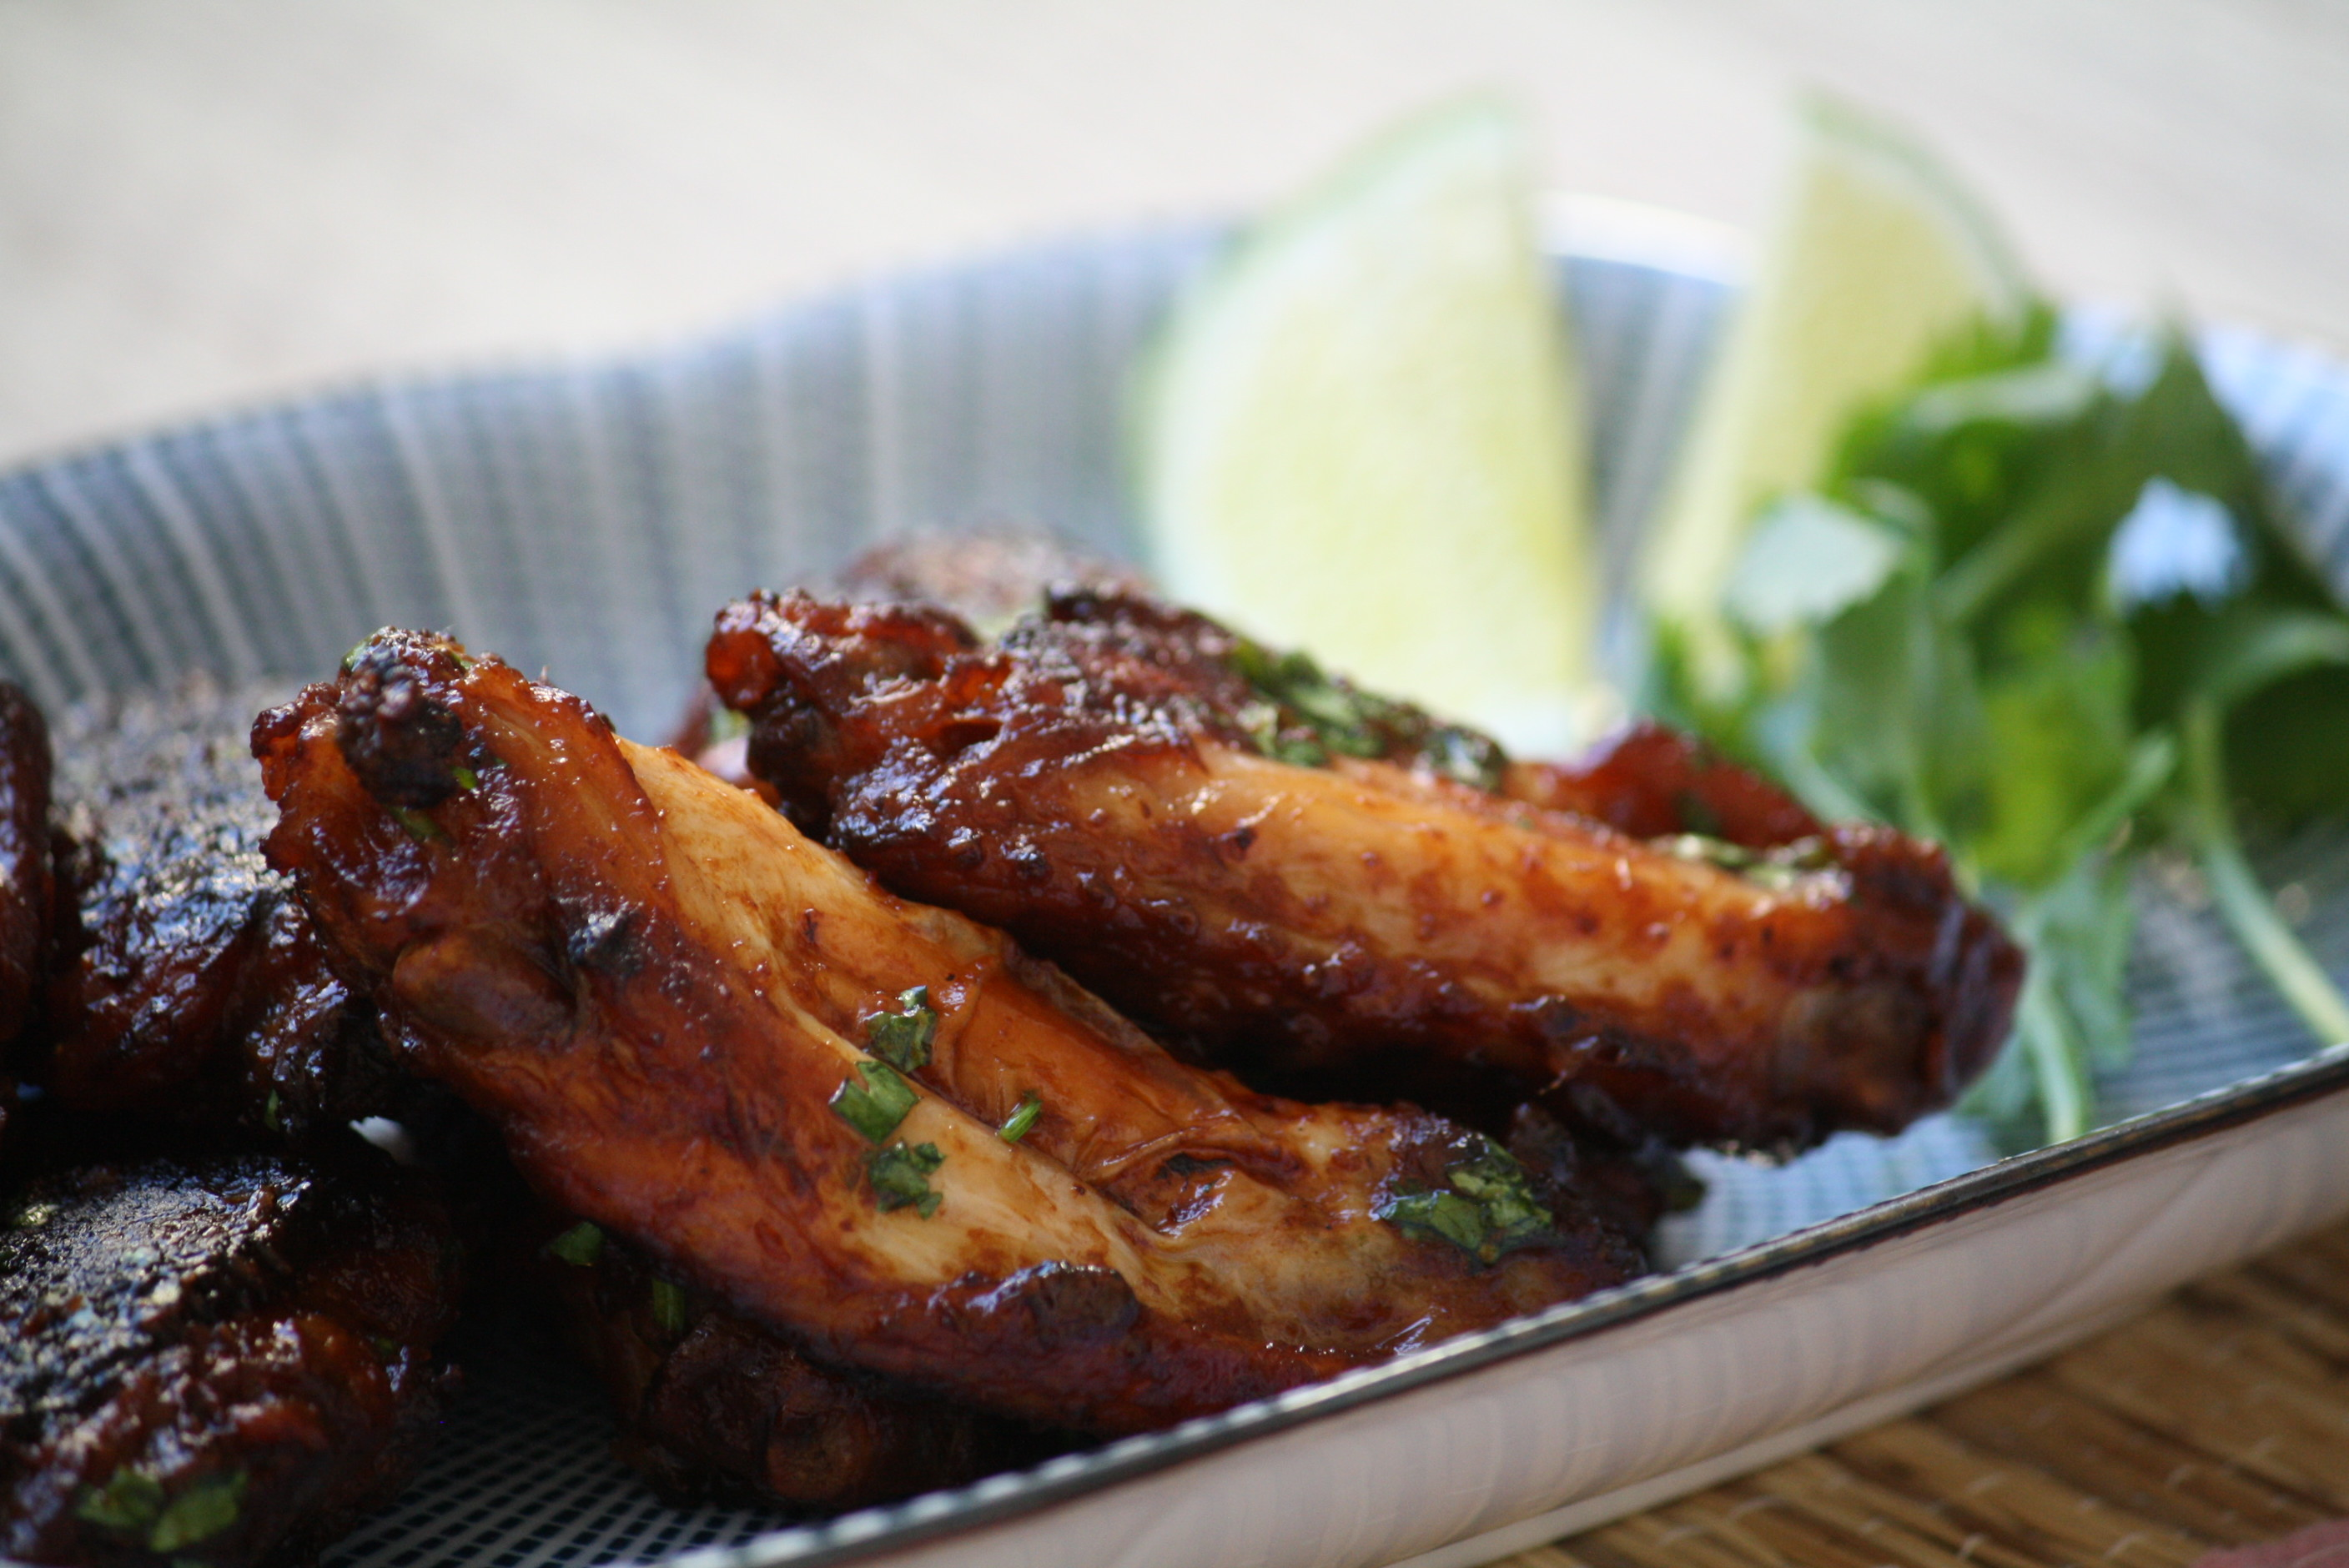 Lime Chili Wings, starring Sosu Srirachup | Mollie's Kitchen